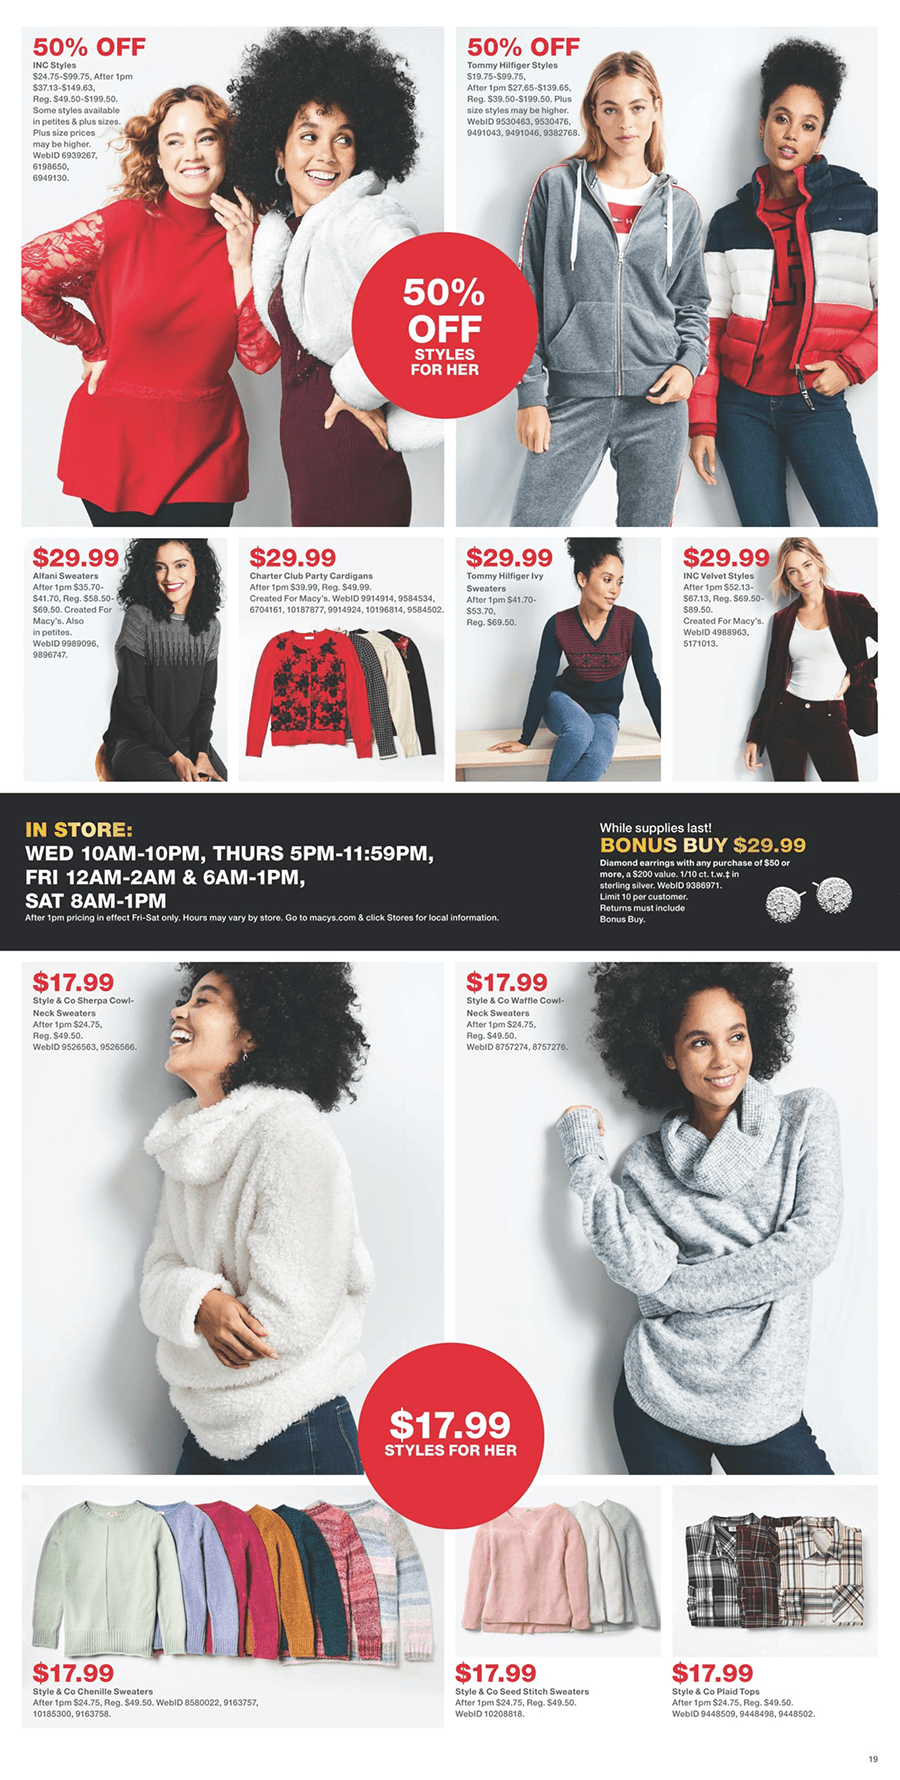 Macy's Black Friday 2019 Page 19